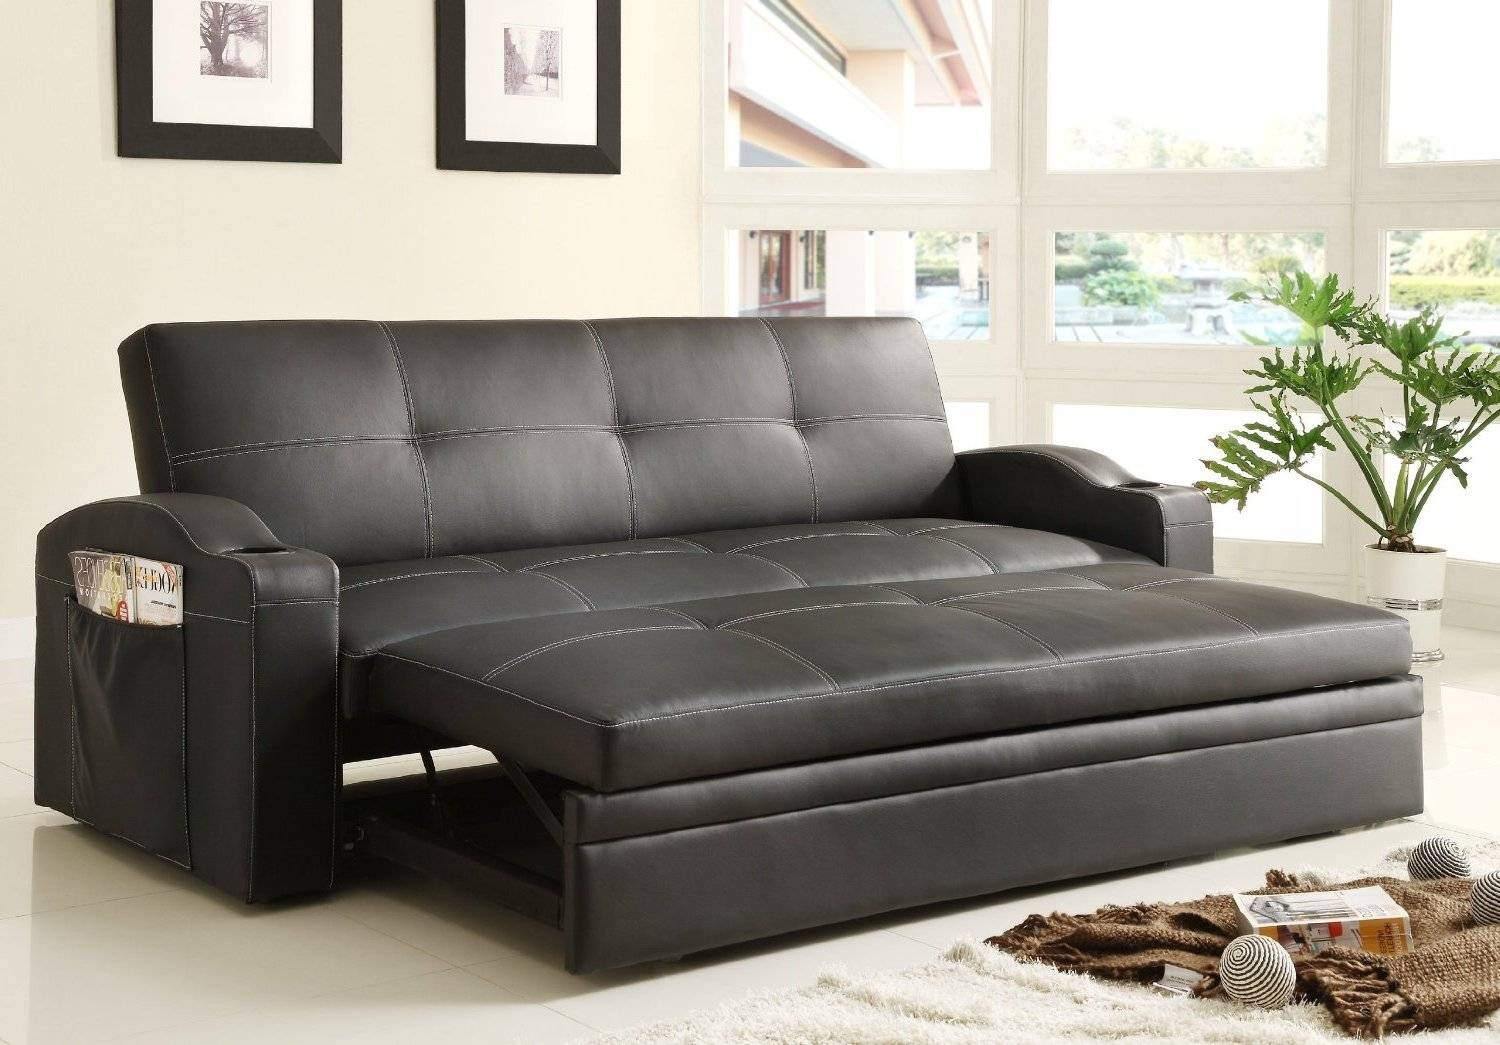 Adjustable Queen Size Sofa Bed Black Color Upholstered In Black Bi within Sofa Beds With Trundle (Image 2 of 15)